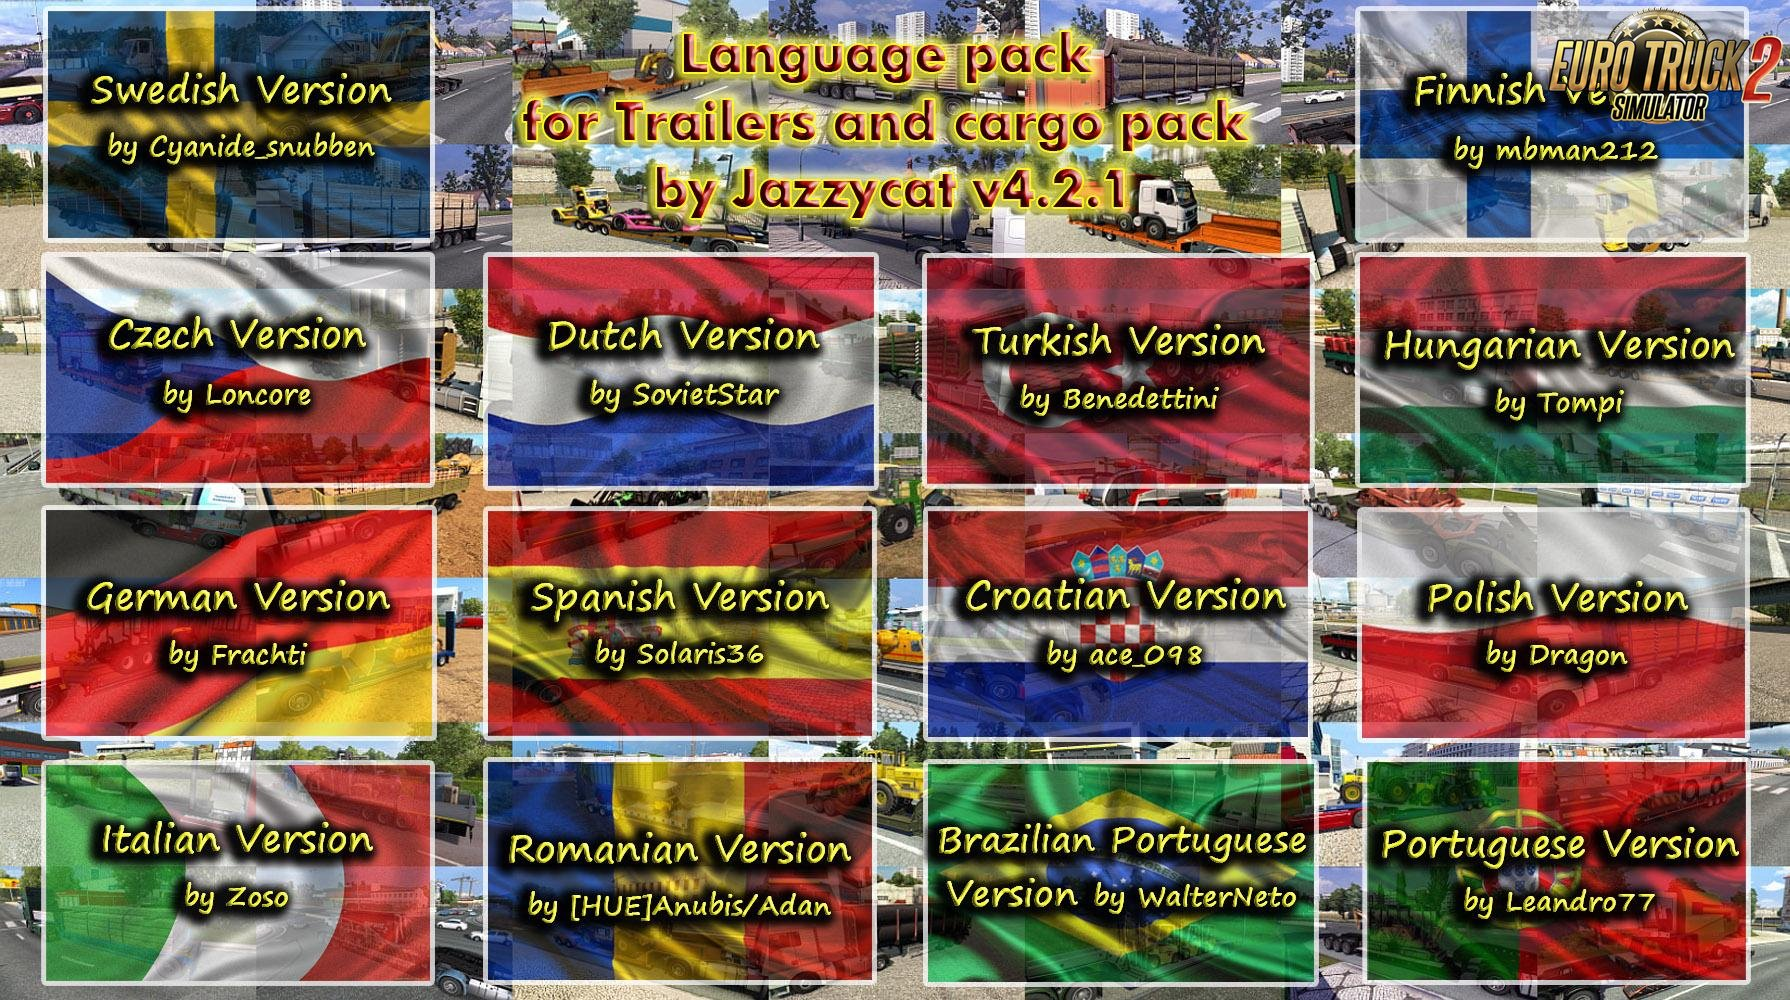 Language Pack for Trailers and cargo pack v4.2.1 by Jazzycat